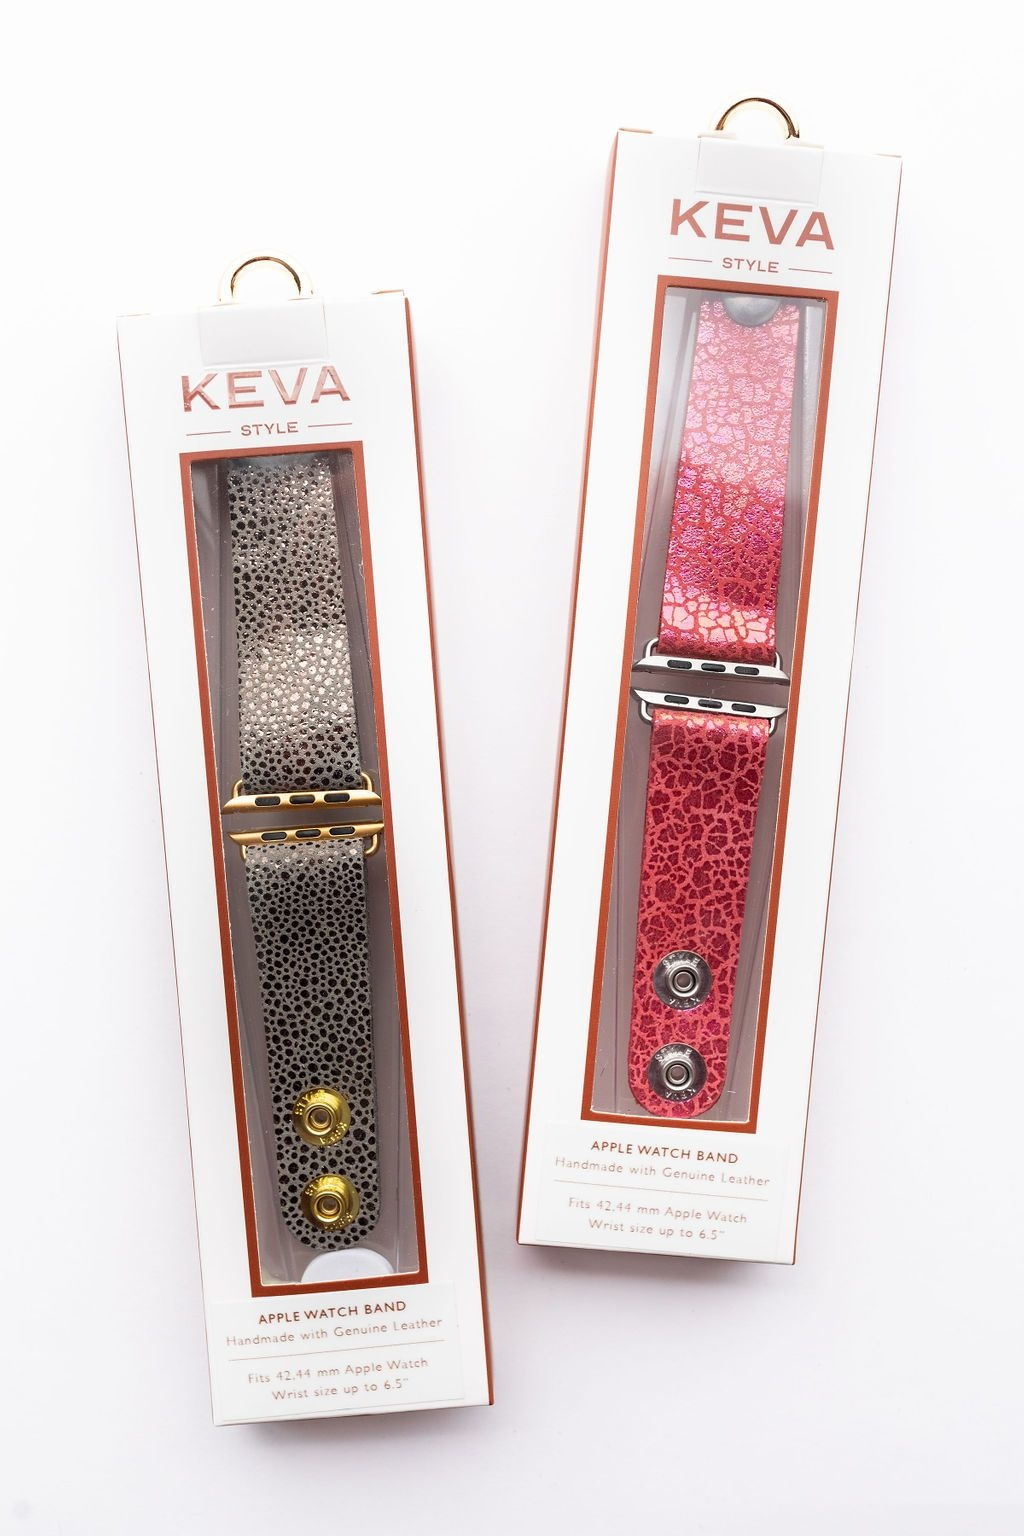 Keva Style Glamper Green Watch Band